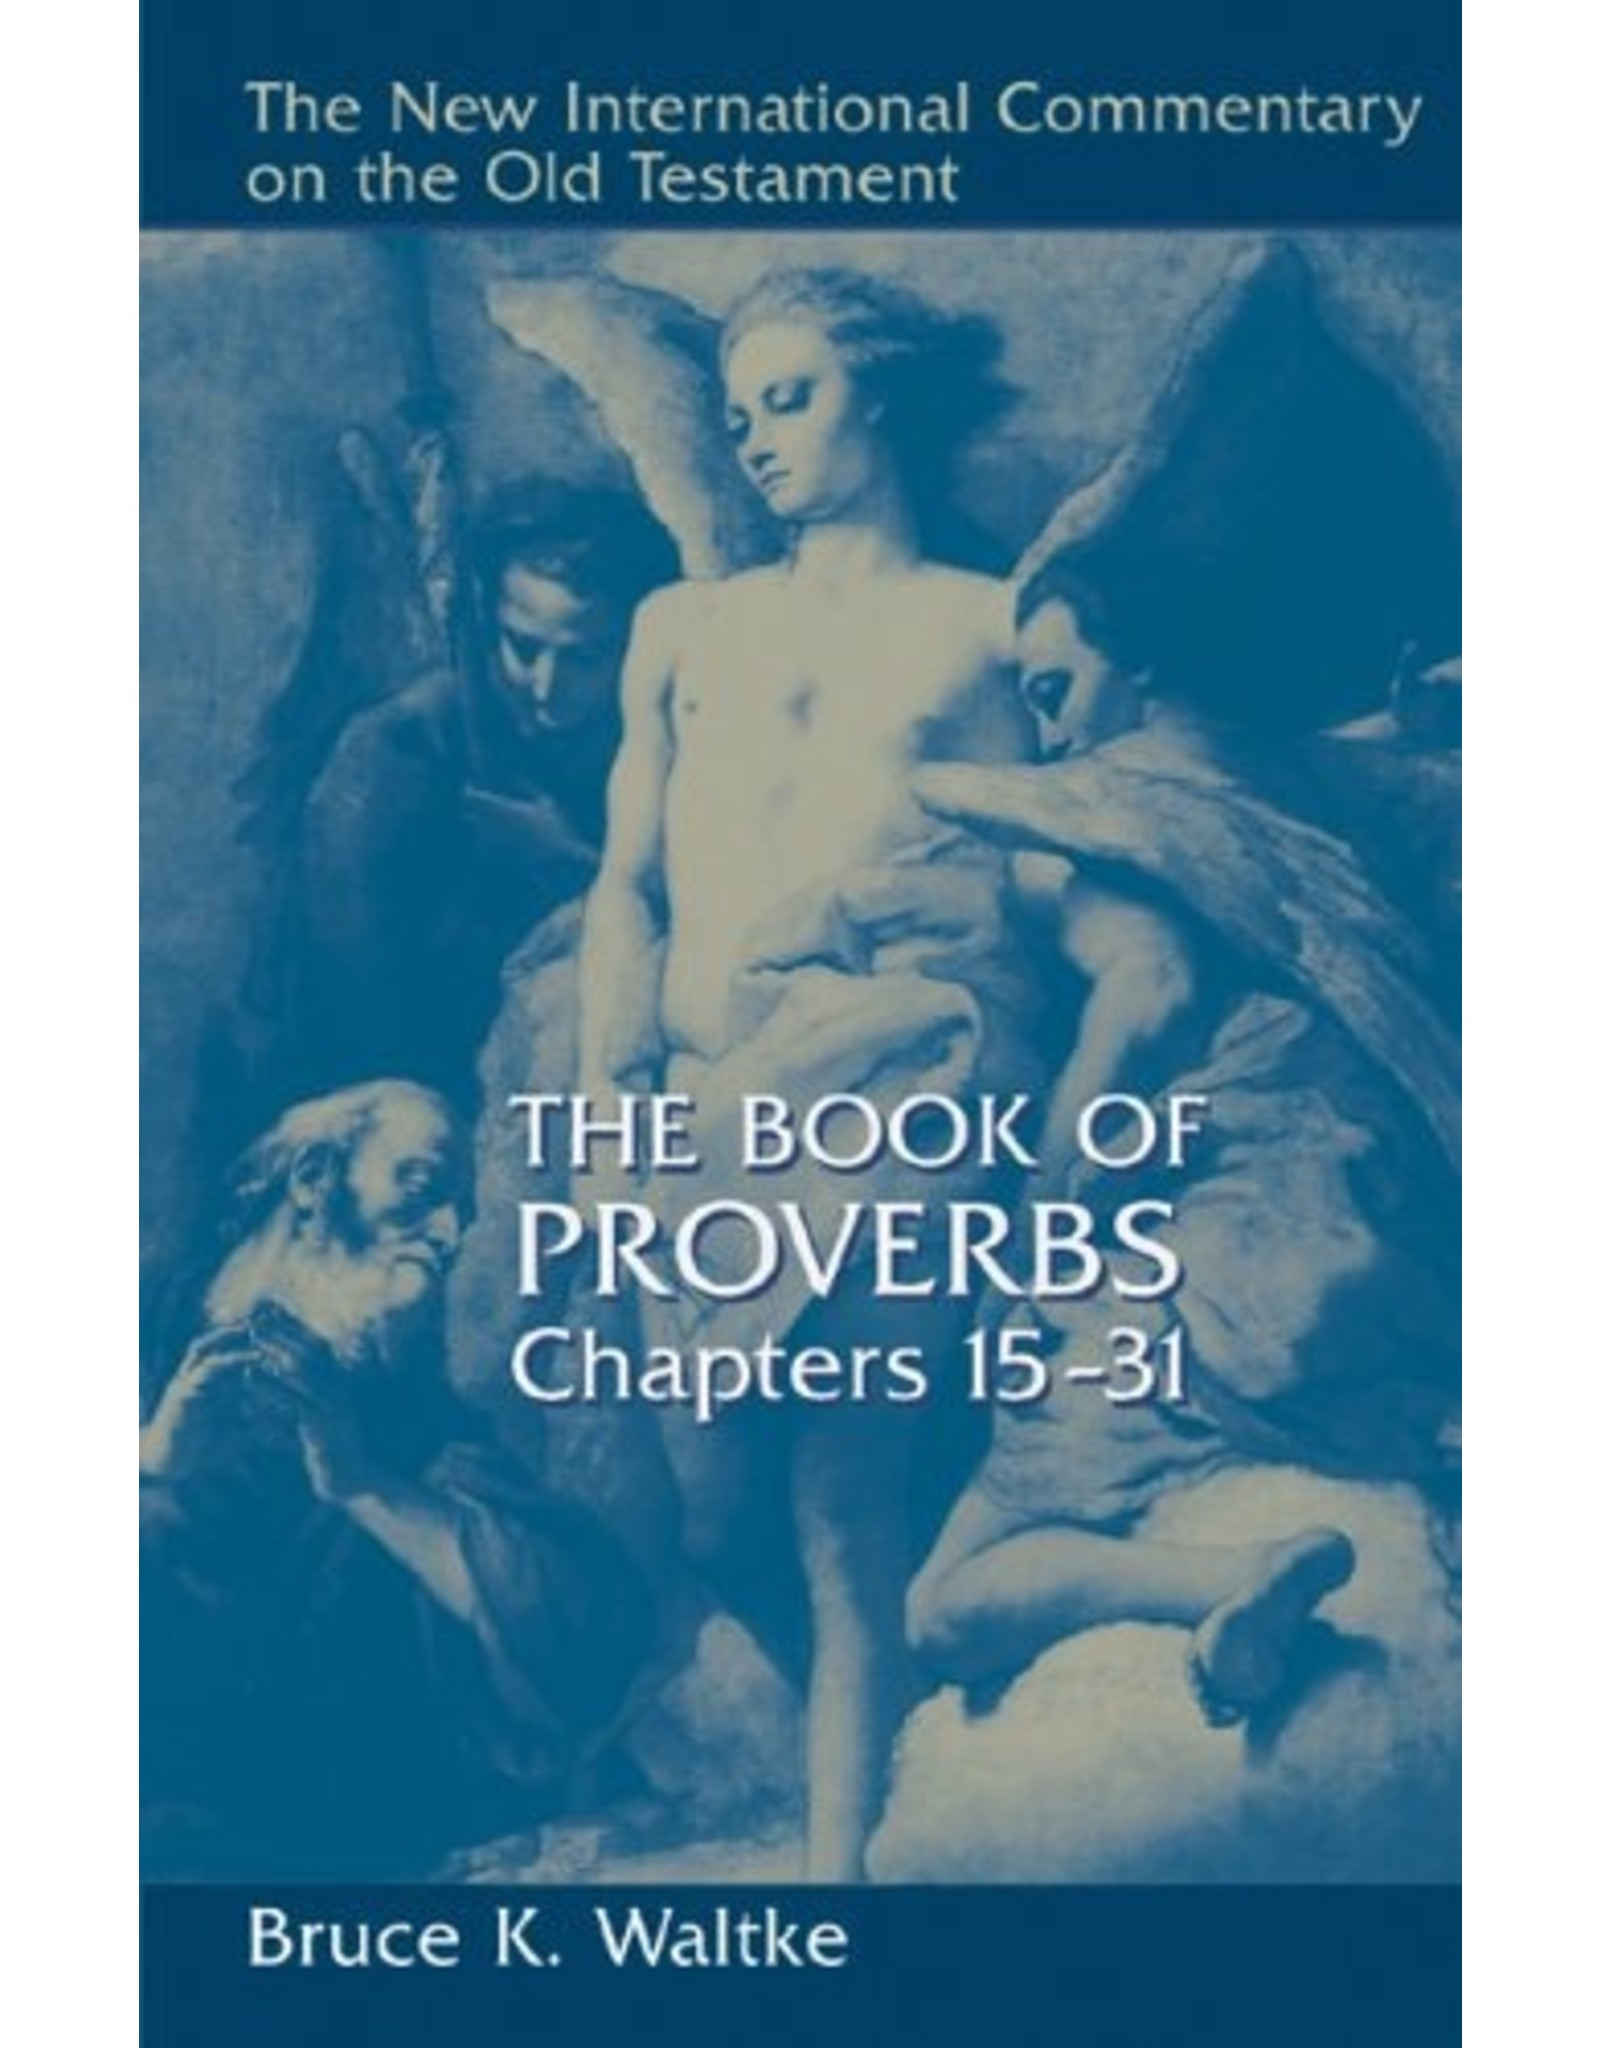 Wm. B. Eerdmans New International Commentary on the Old Testament: The Book of Proverbs, Chapters 15-31